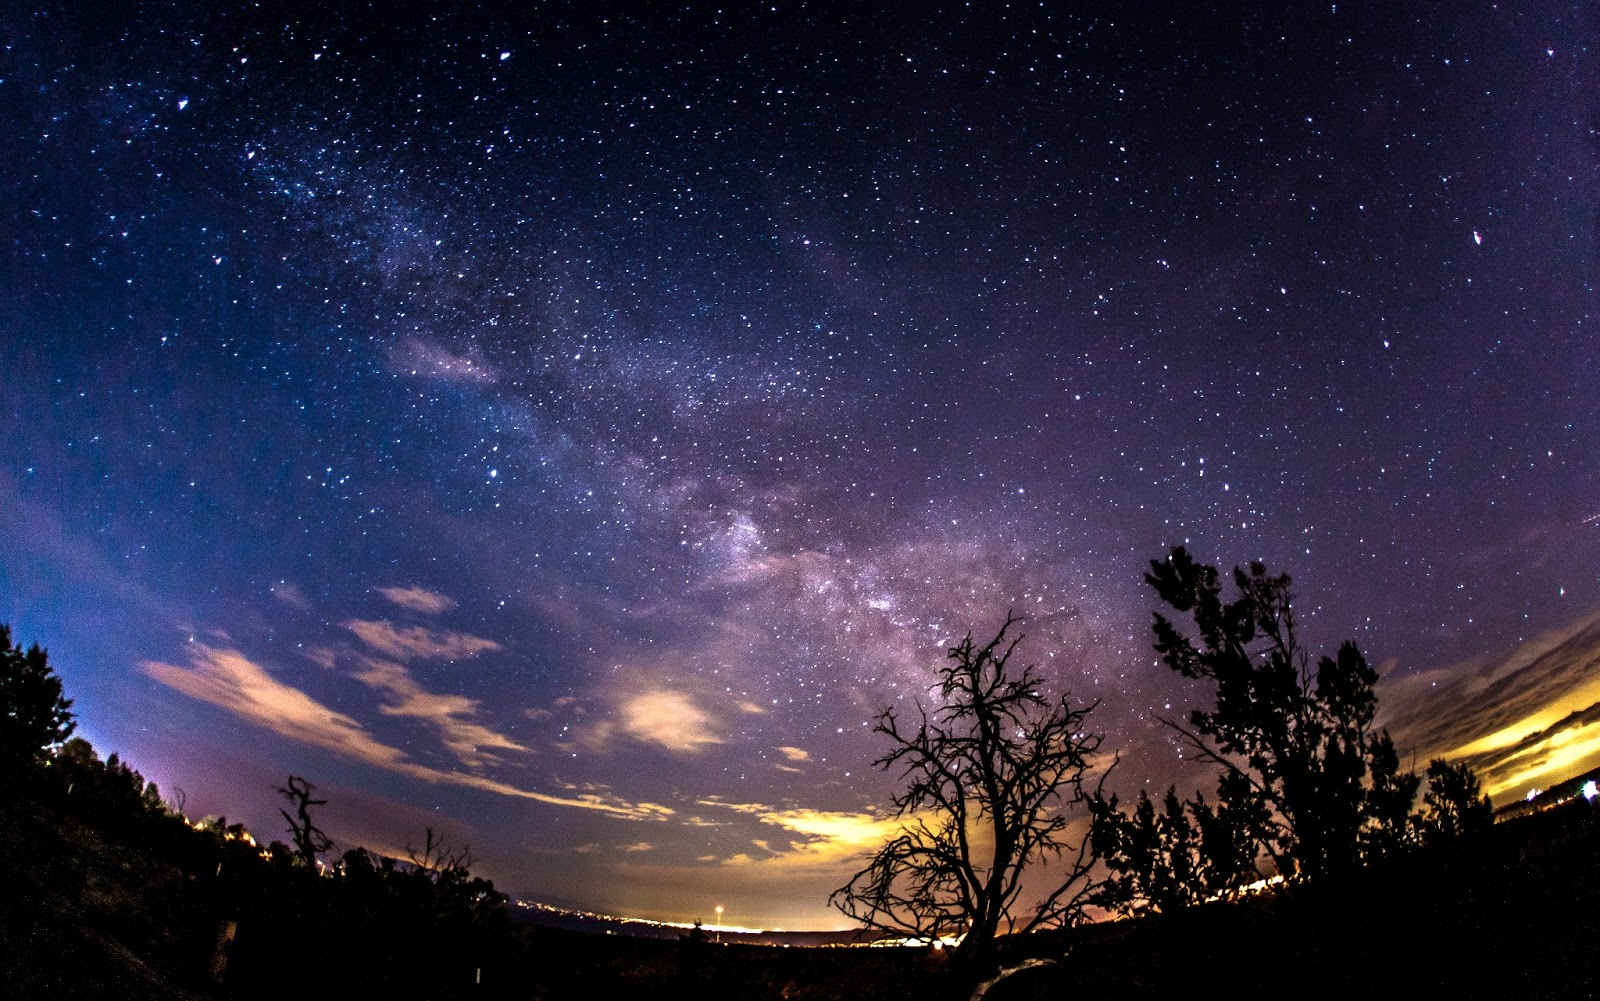 Milky Way Wallpapers High Quality | Download Free